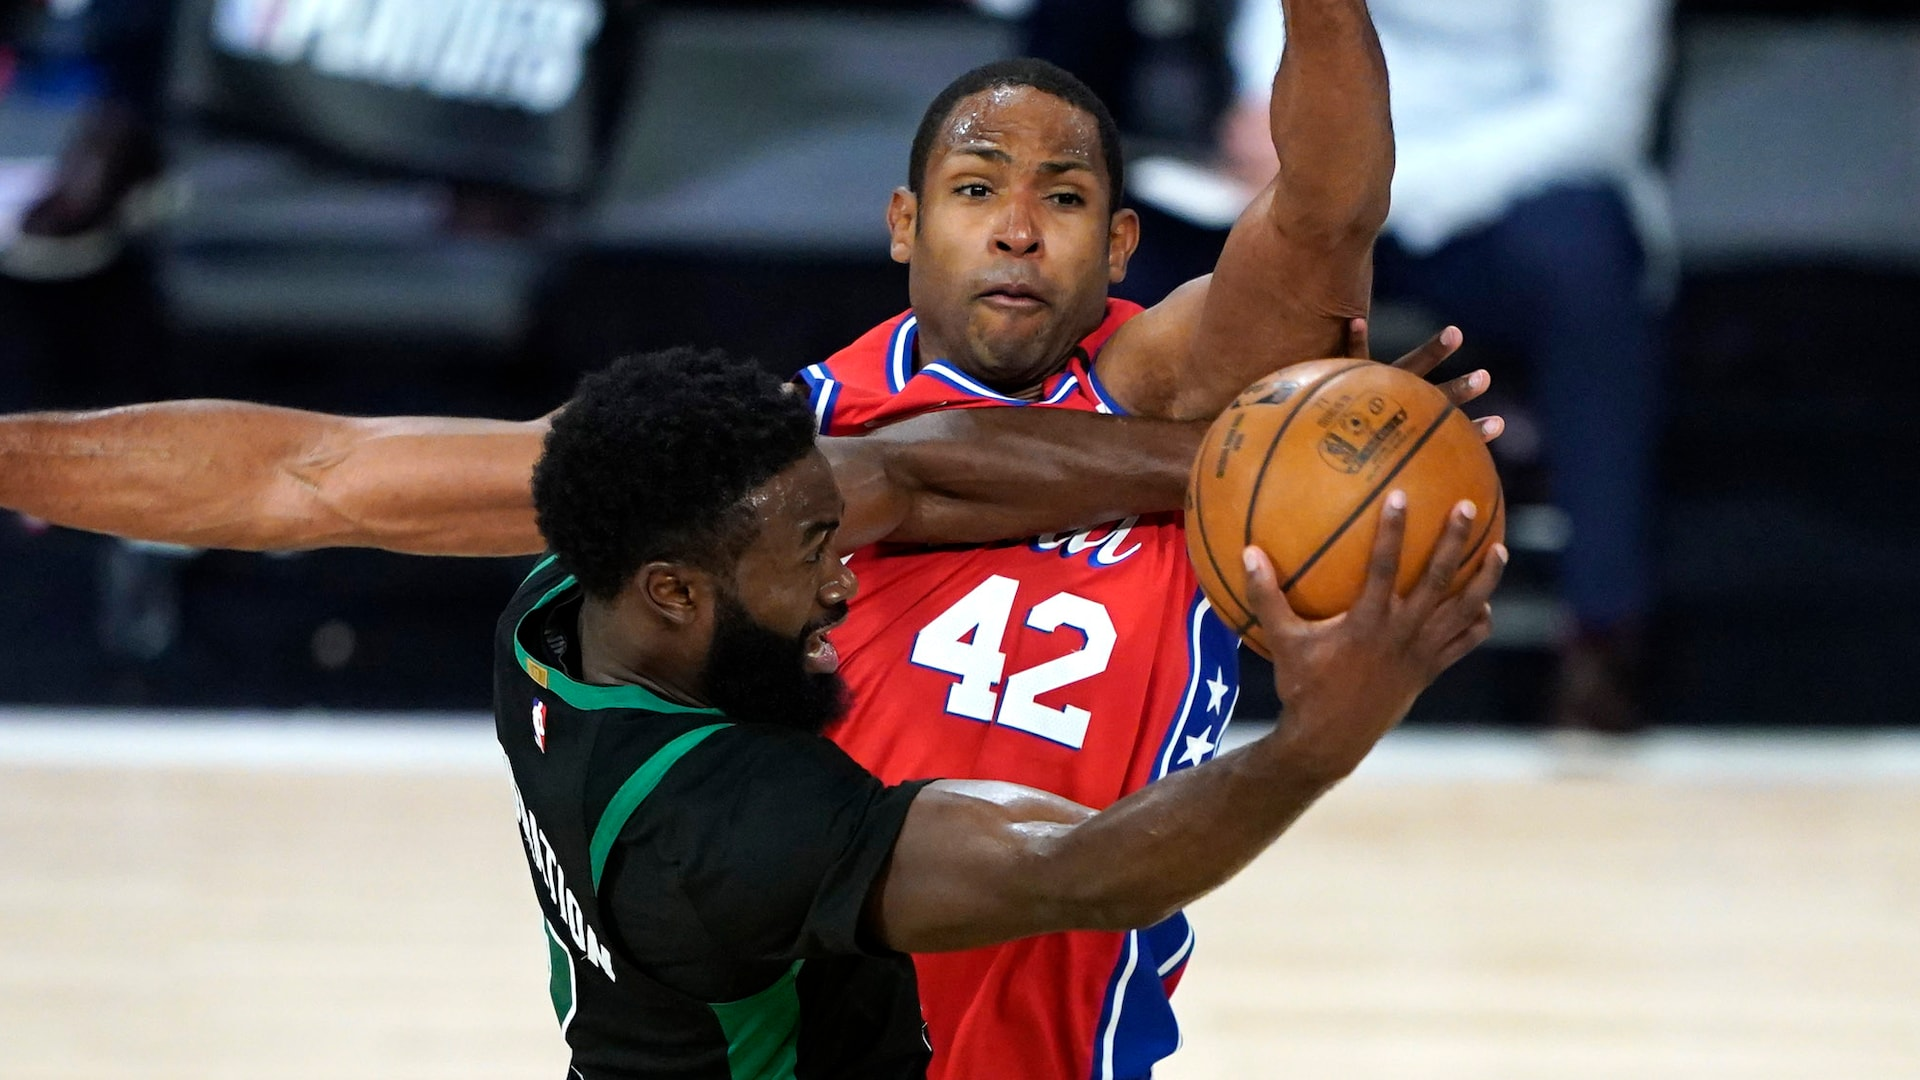 Celtics' speed trumps Sixers' size in Game 1